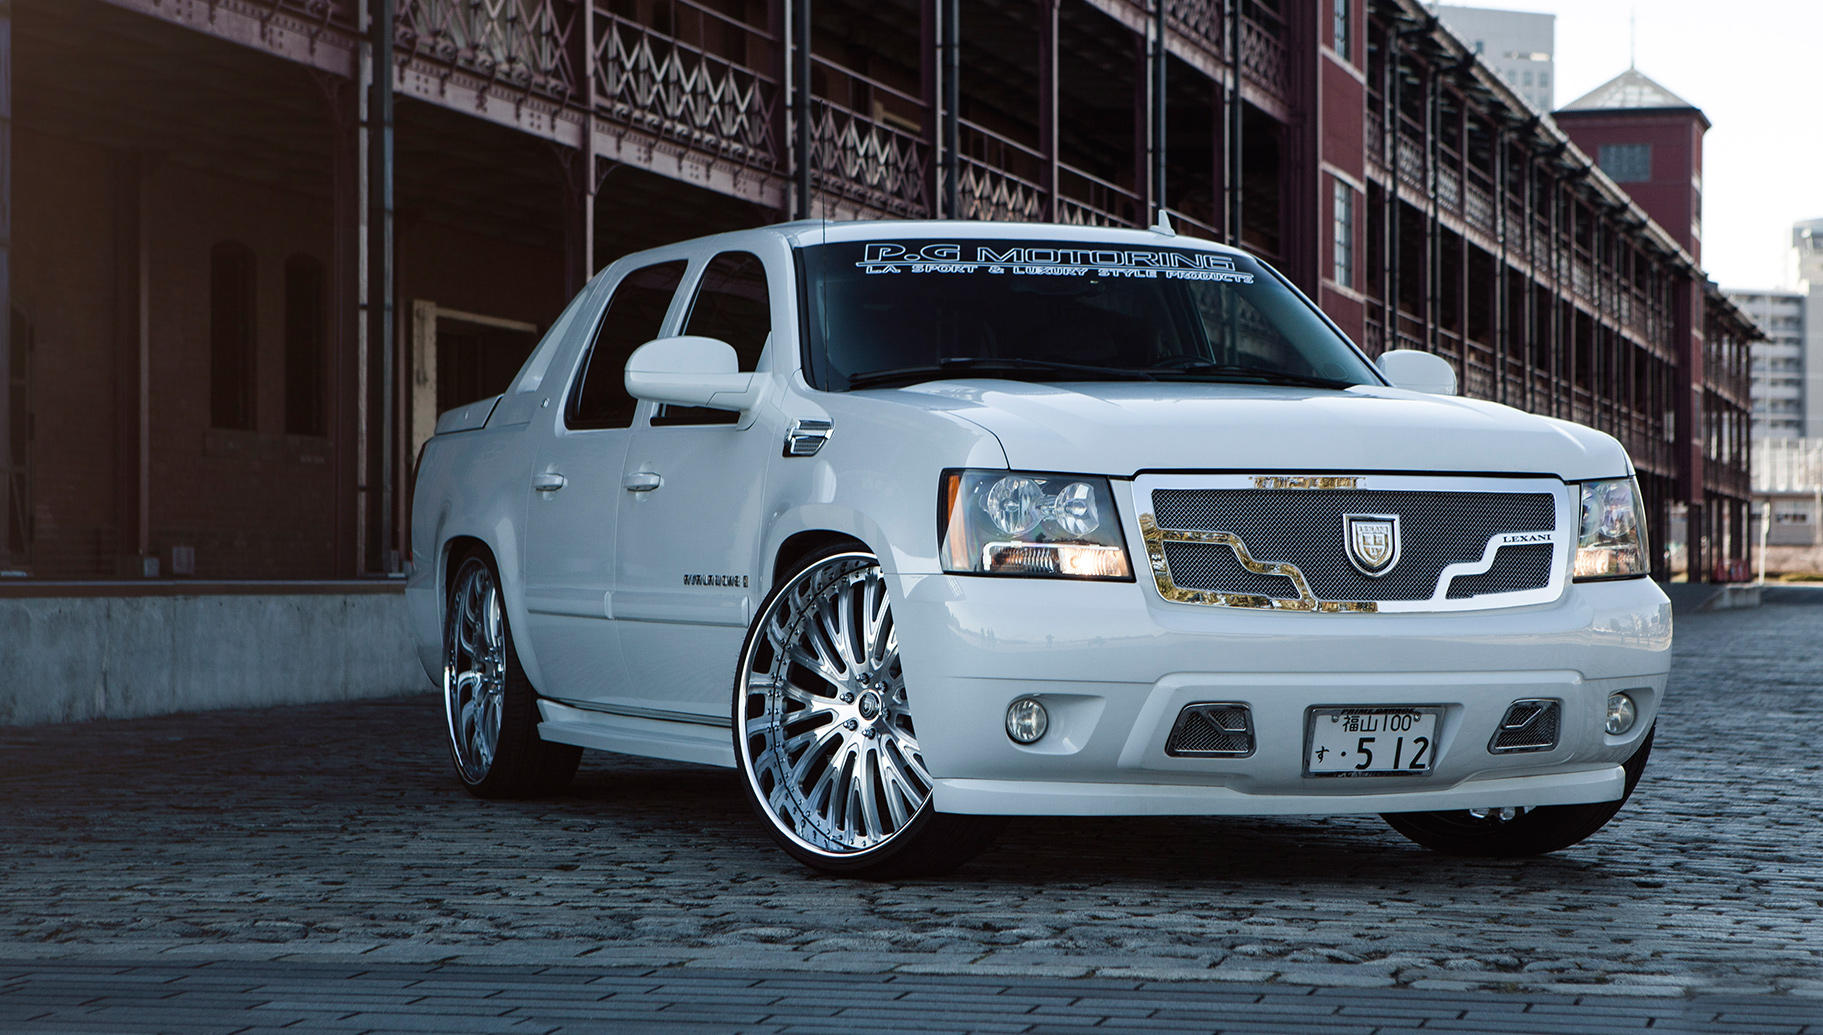 Avalanche chevy avalanche 2014 : Lexani Luxury Wheels | Vehicle Gallery - 2014 Chevrolet Avalanche